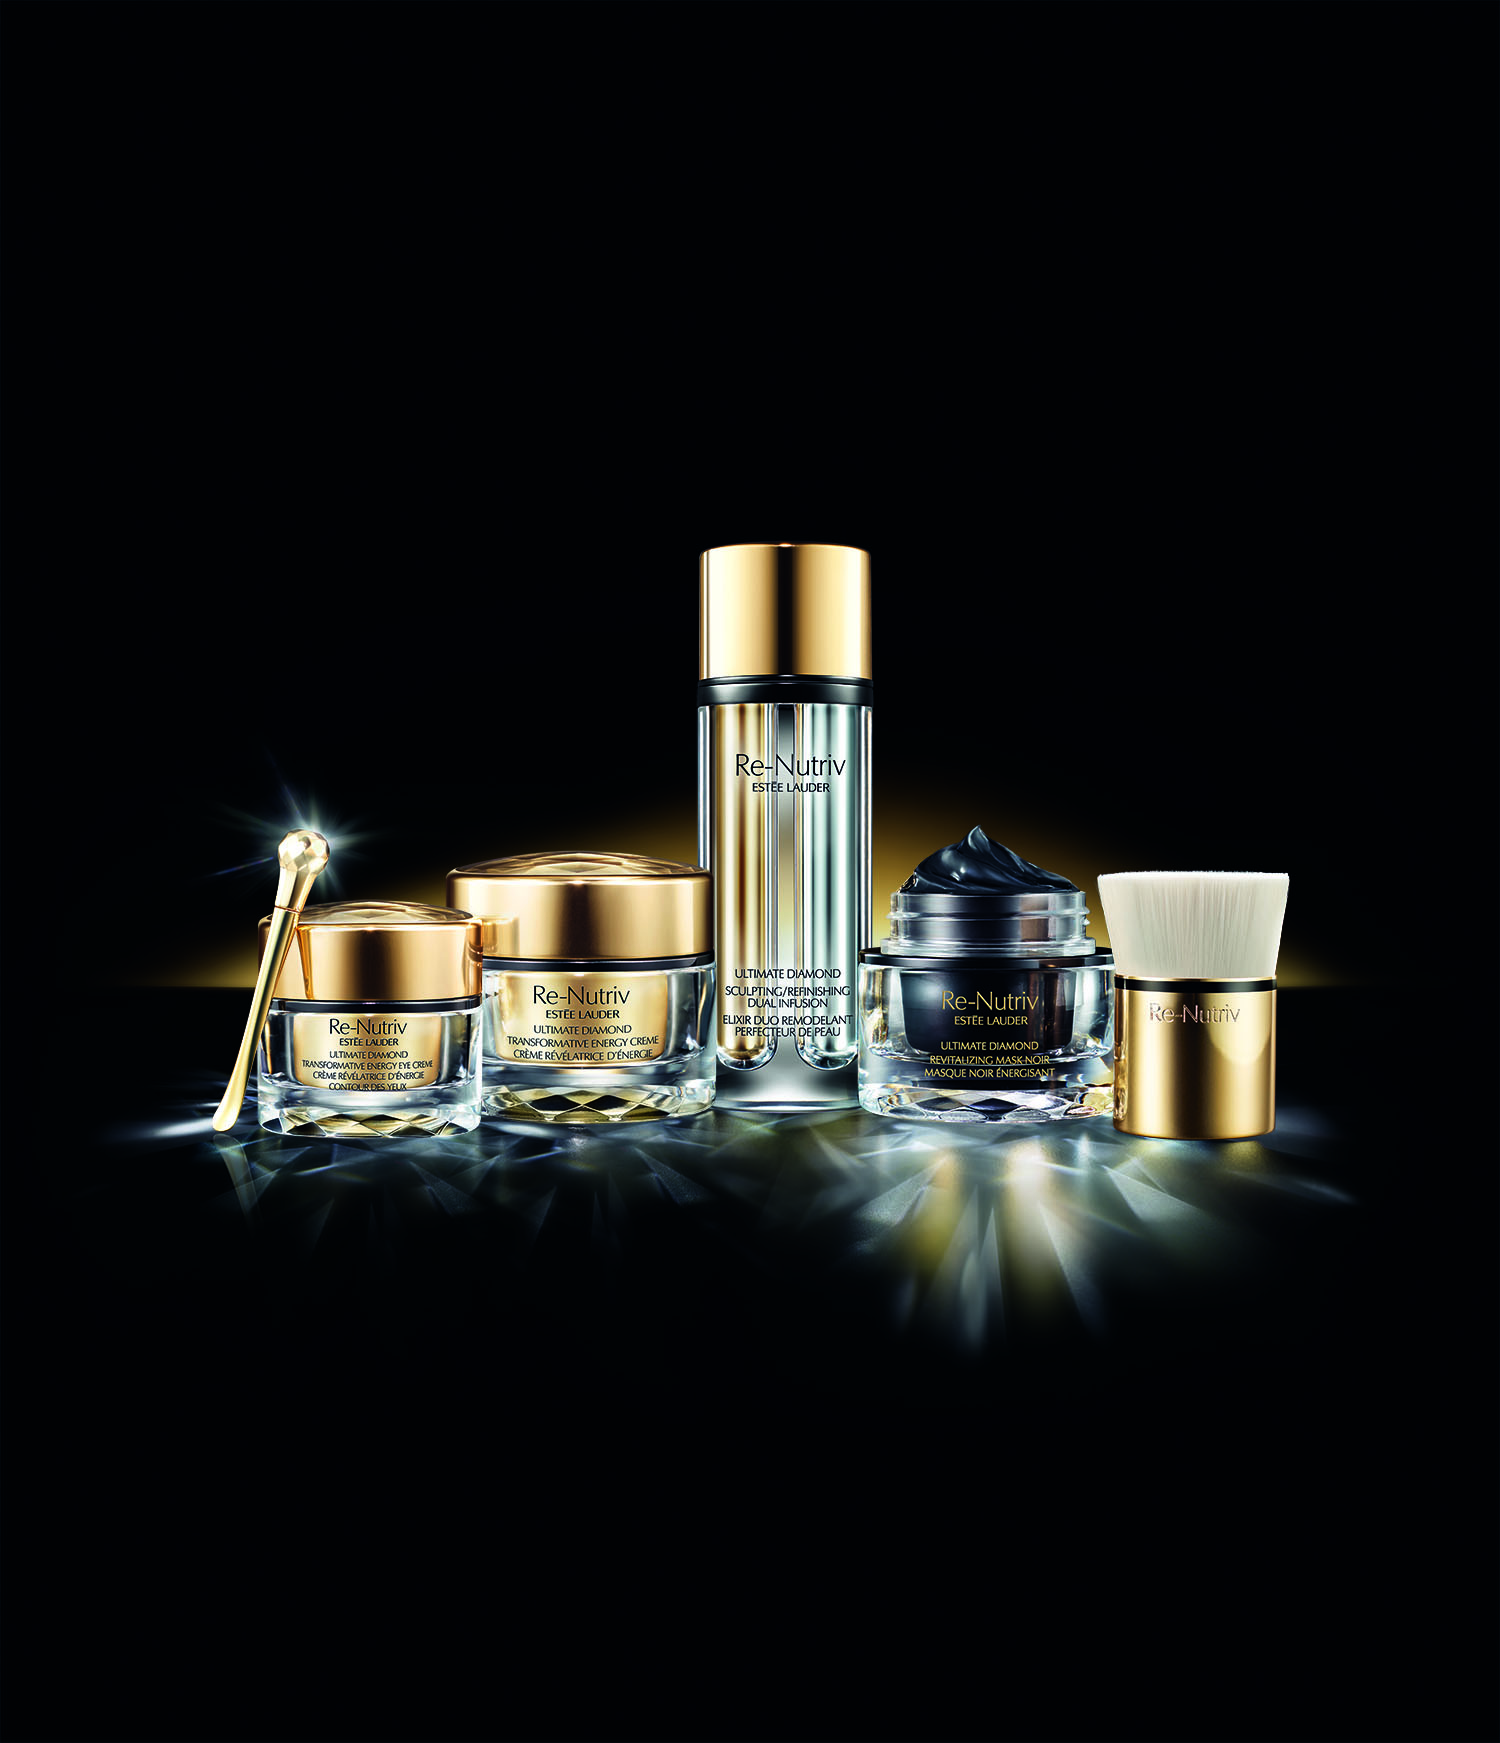 Estee Lauder__Ultimate_Diamond_Mask_Noir_Collection_Collateral_Shot